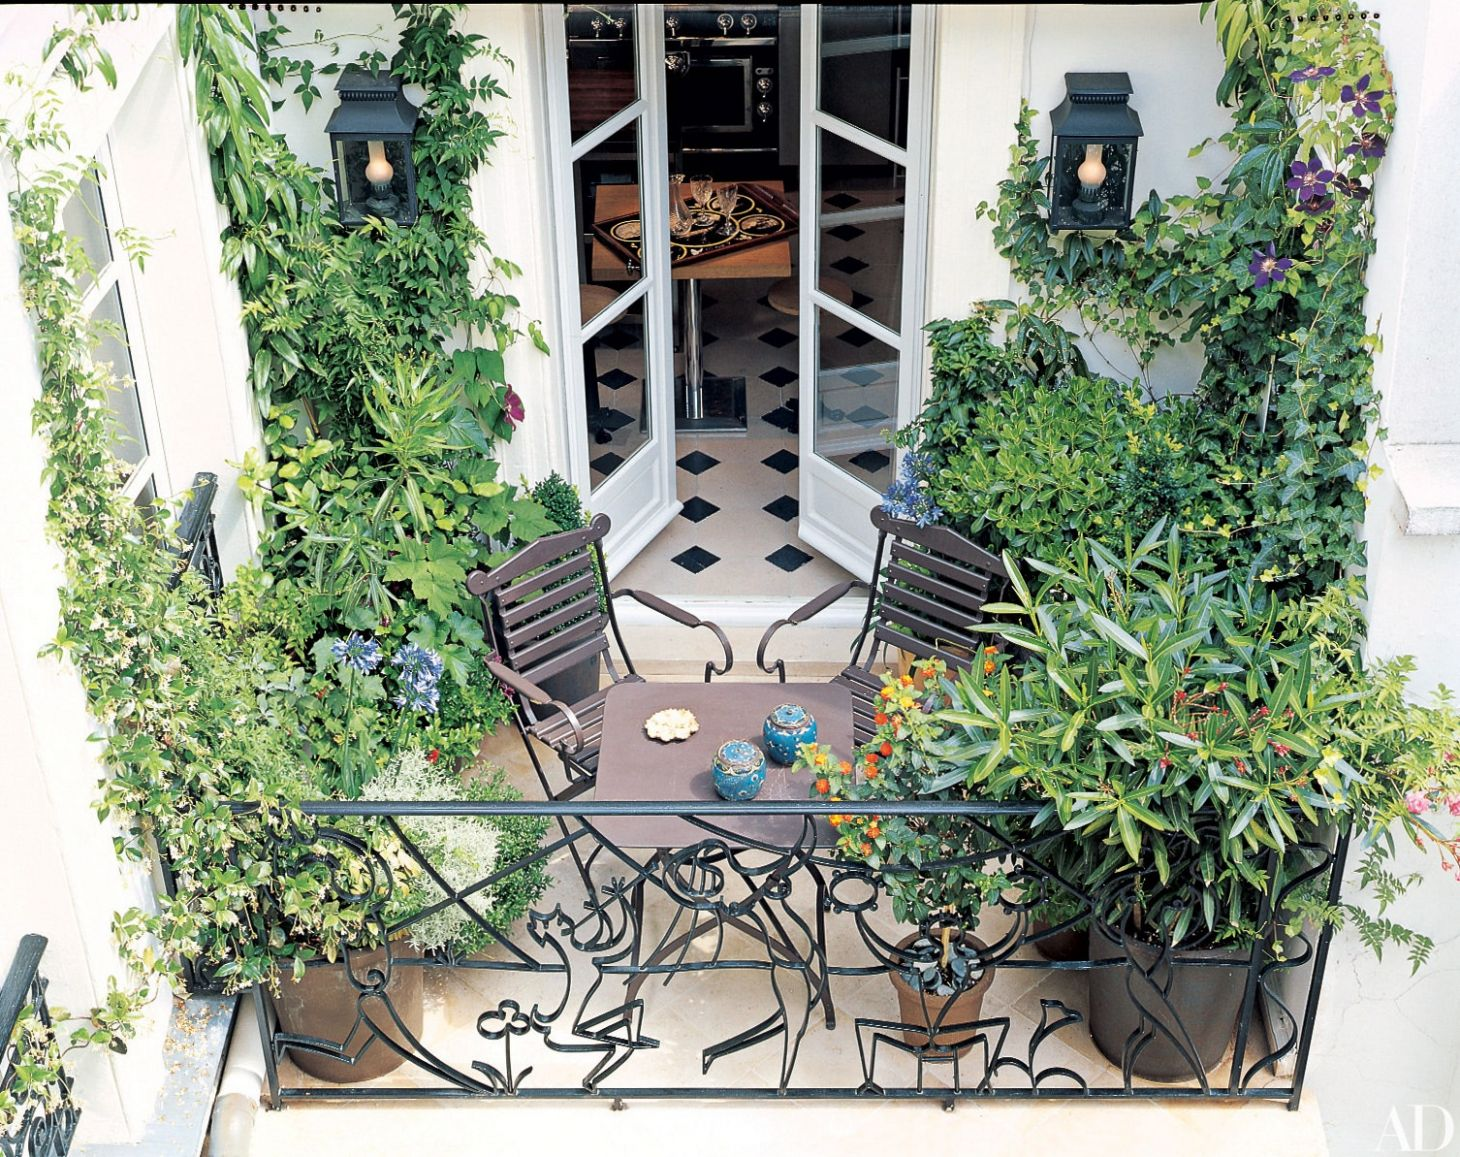 11 Cozy Balcony Ideas and Decor Inspiration | Architectural Digest - balcony decoration ideas with plants